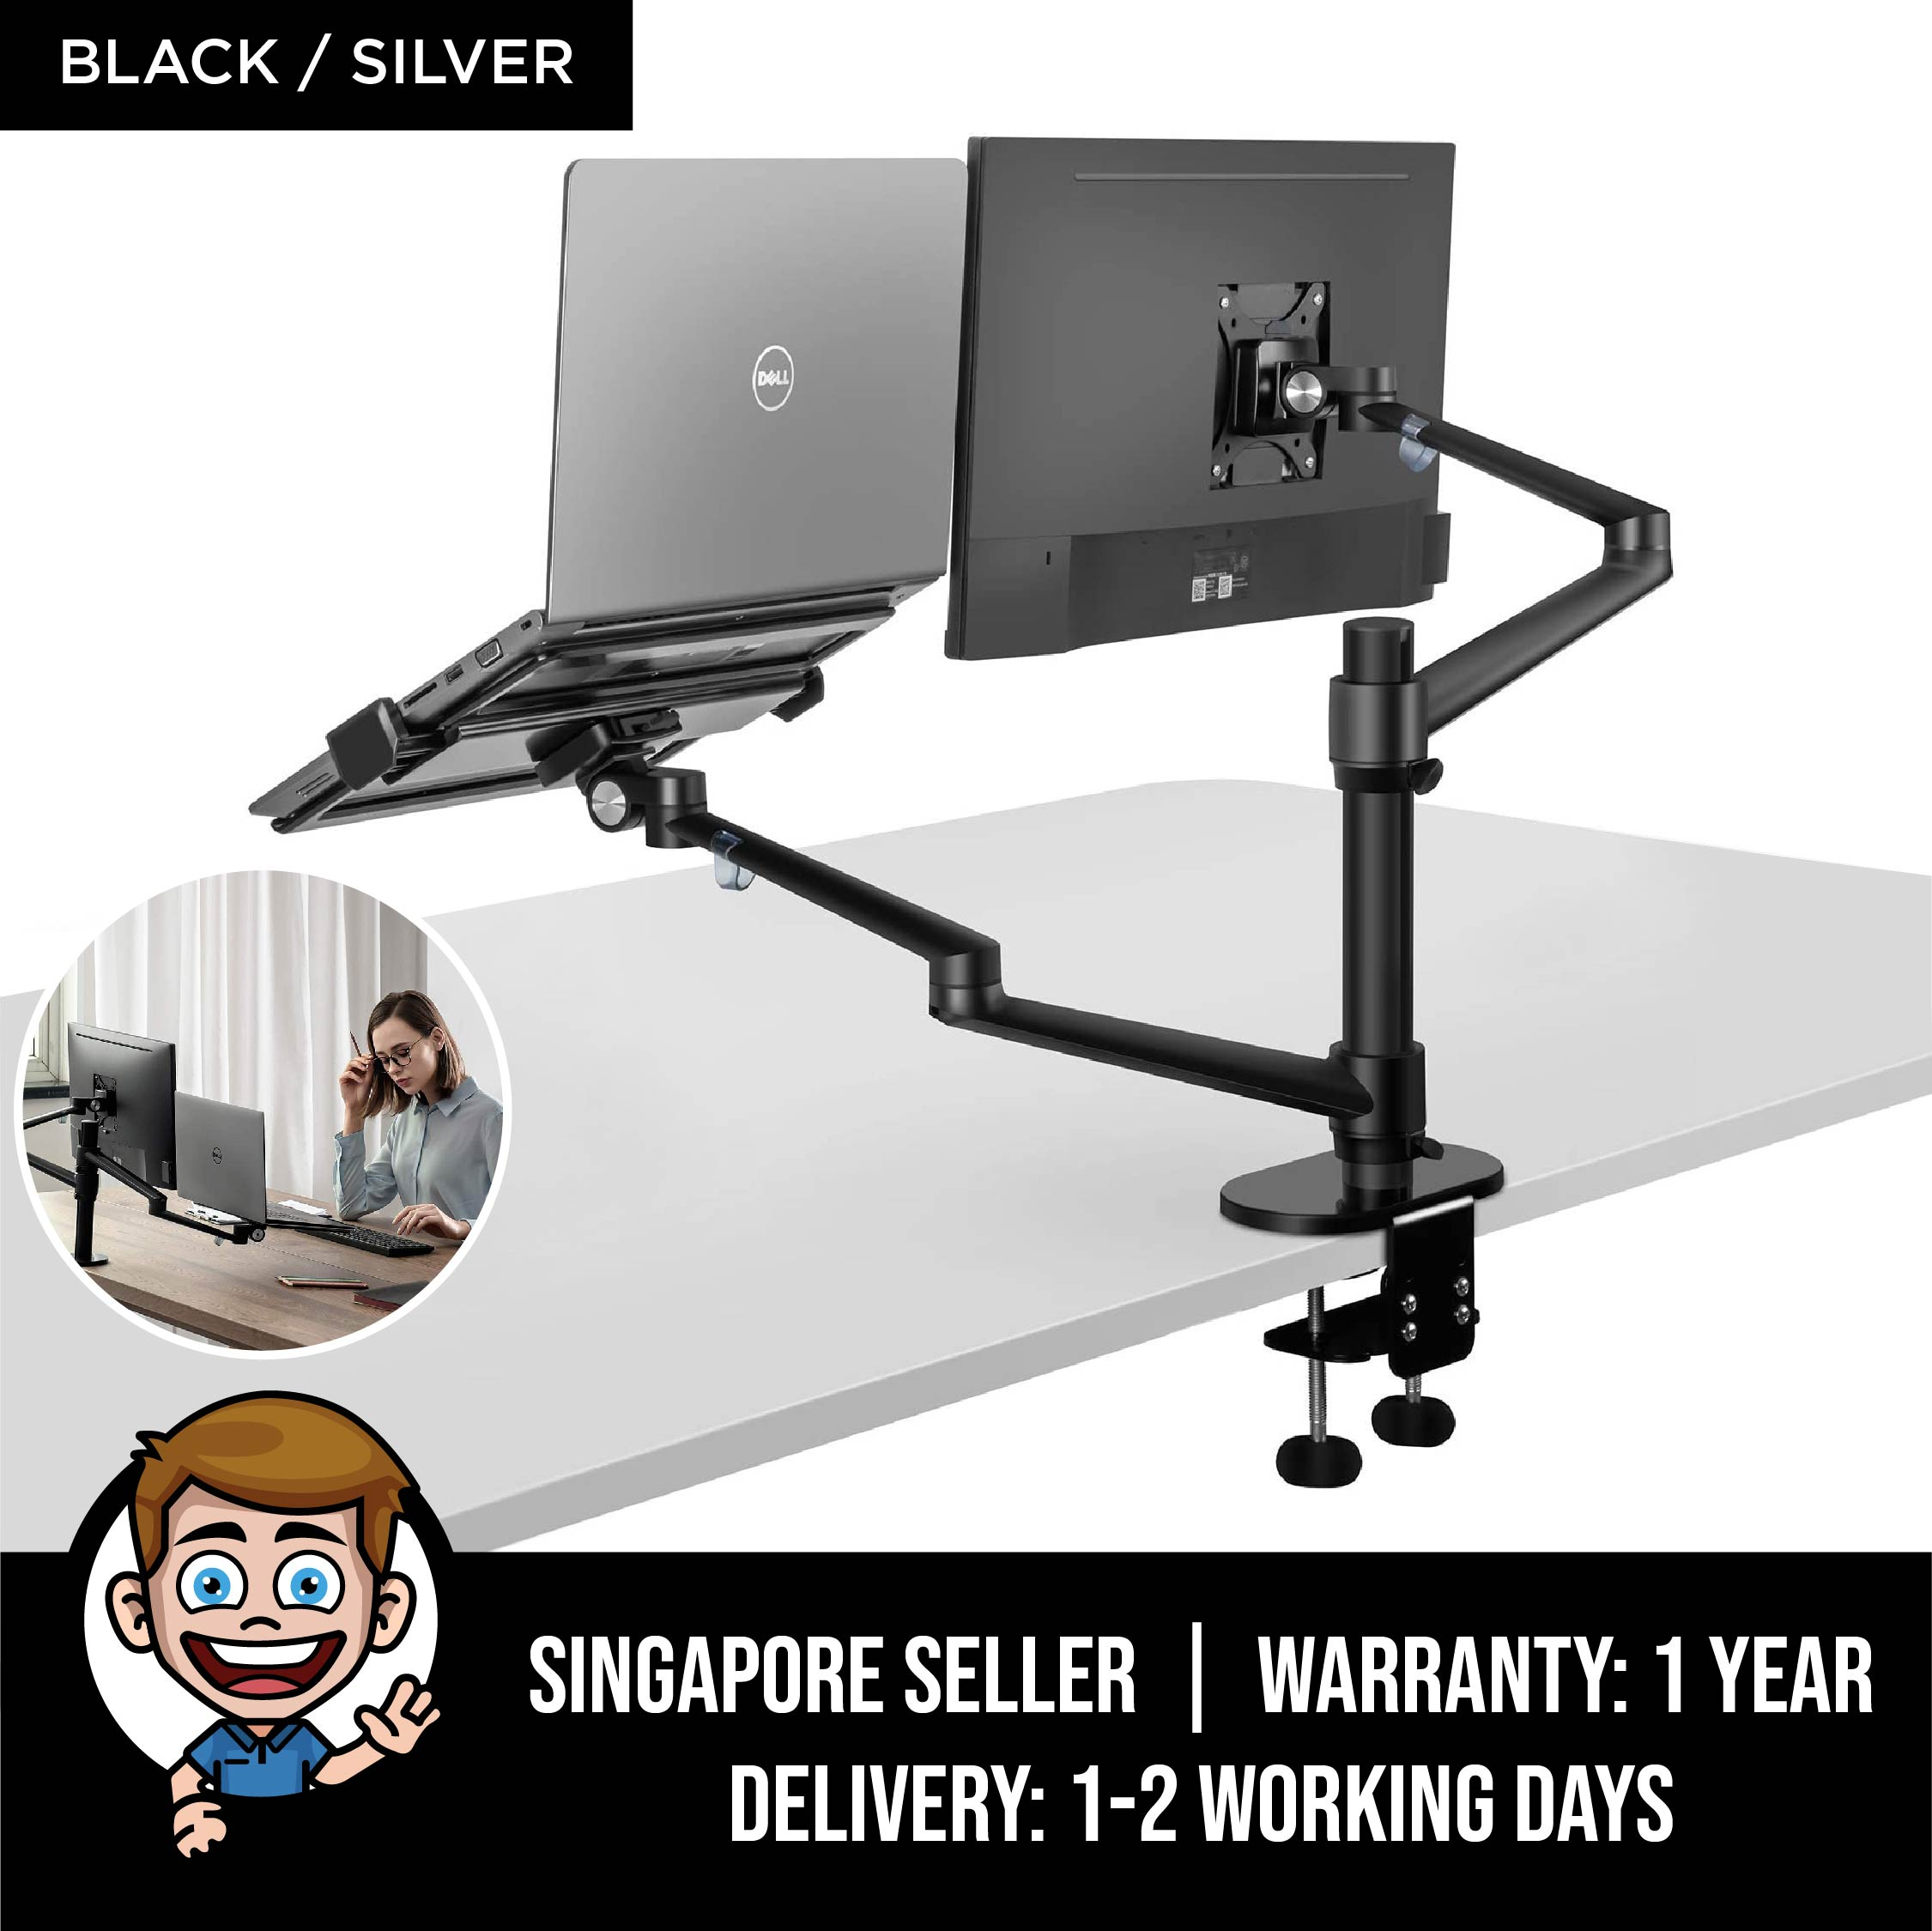 Monitor and Laptop Mount, 2-in-1 Adjustable Dual Monitor Arm Desk Mounts,Single  Desk Arm Stand/Holder for 17 to 32 Inch LCD Computer Screens, Extra Tray  Fits 12 to 17 inch Laptops - Black /